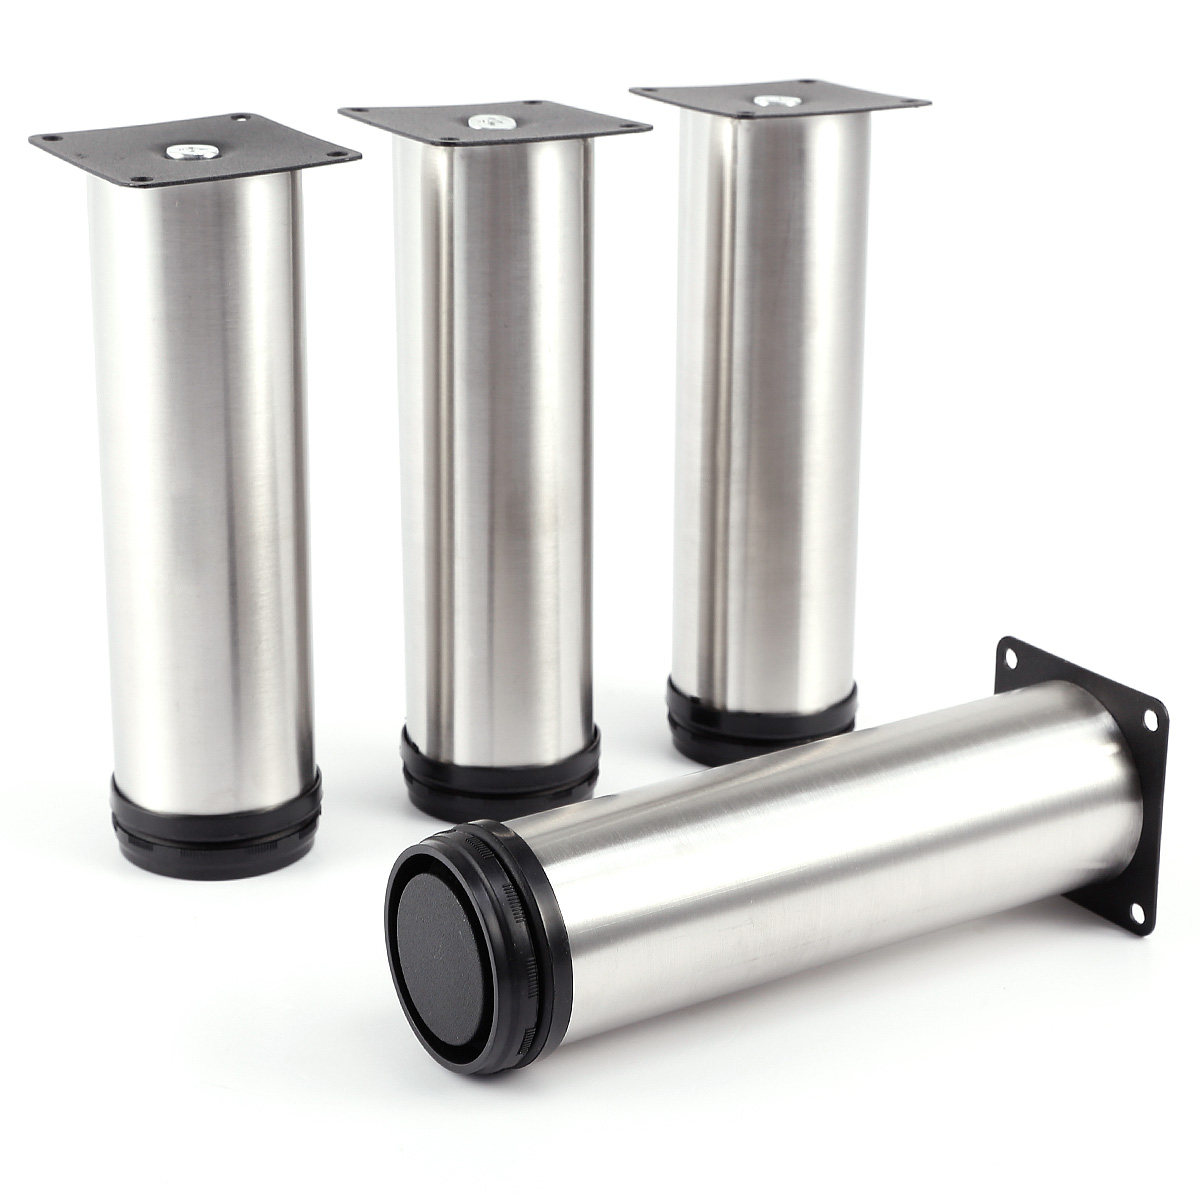 4 Pcs Cabinet Metal Legs Adjustable Stainless Steel Kitchen Feet Round Stand New